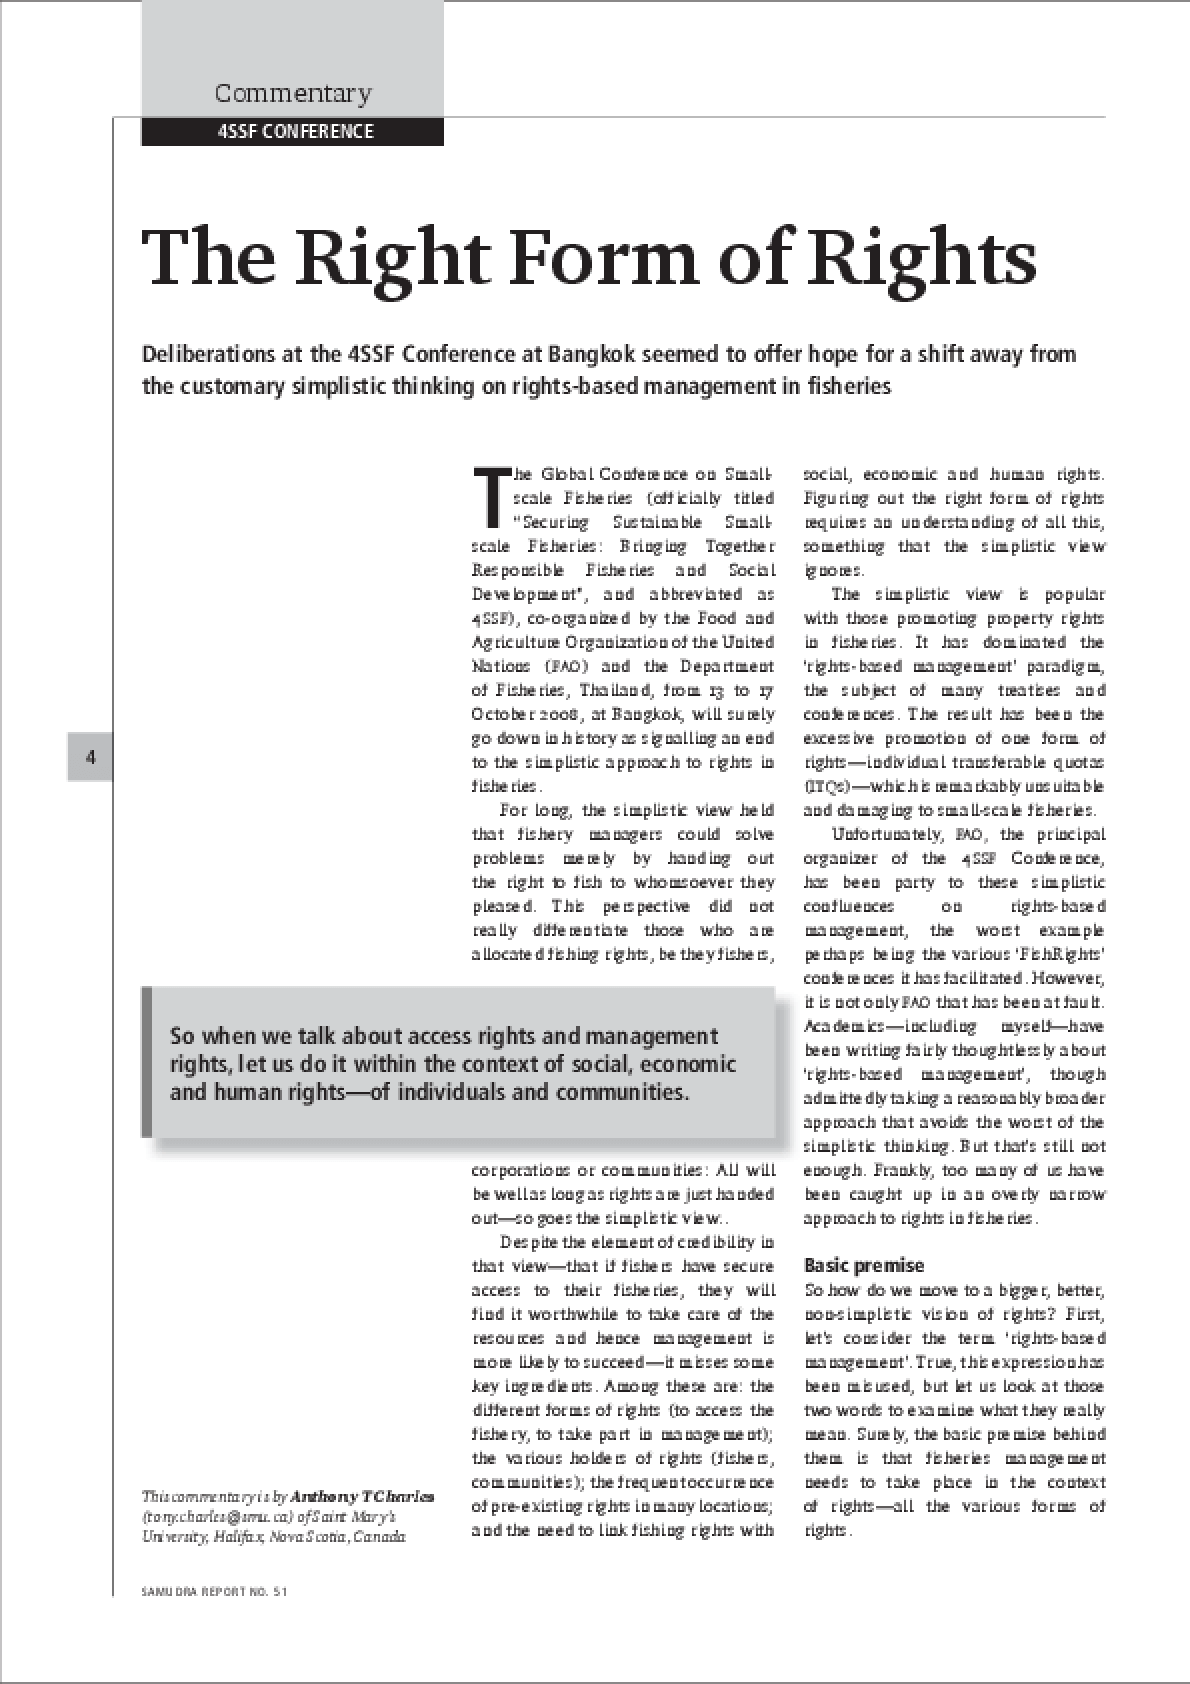 The Right Form of Rights: Commentary, 4SSF Conference